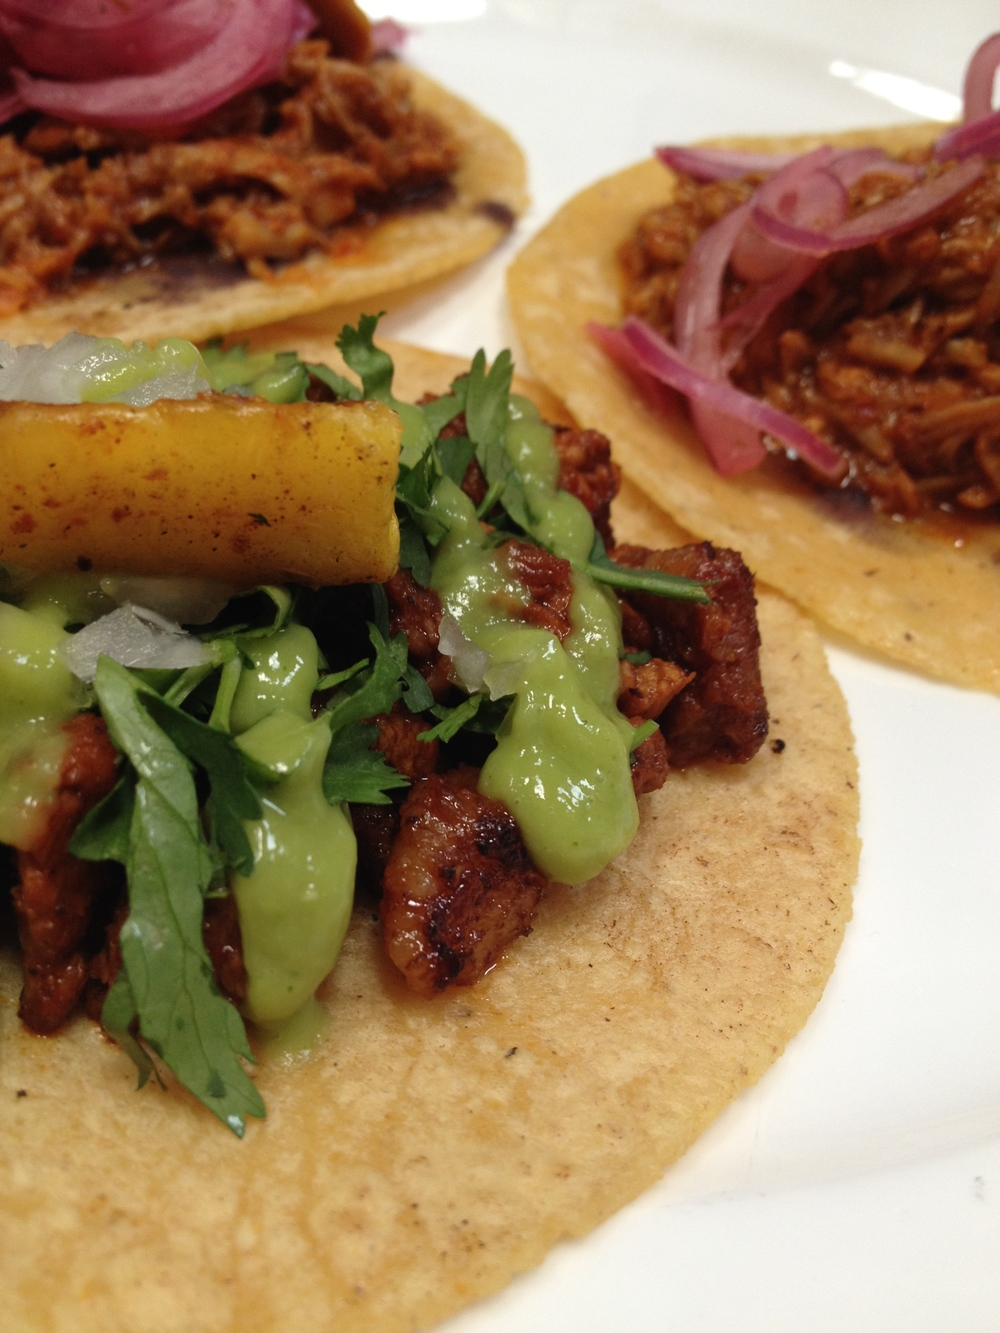 (foreground) Al Pastor taco with adobo-chile rubbed pork shoulder, pineapple, and avocado (background) Two Cochinita Pibil tacos with pulled pork shoulder, pickled red onion, oregano, habanero, and black beans